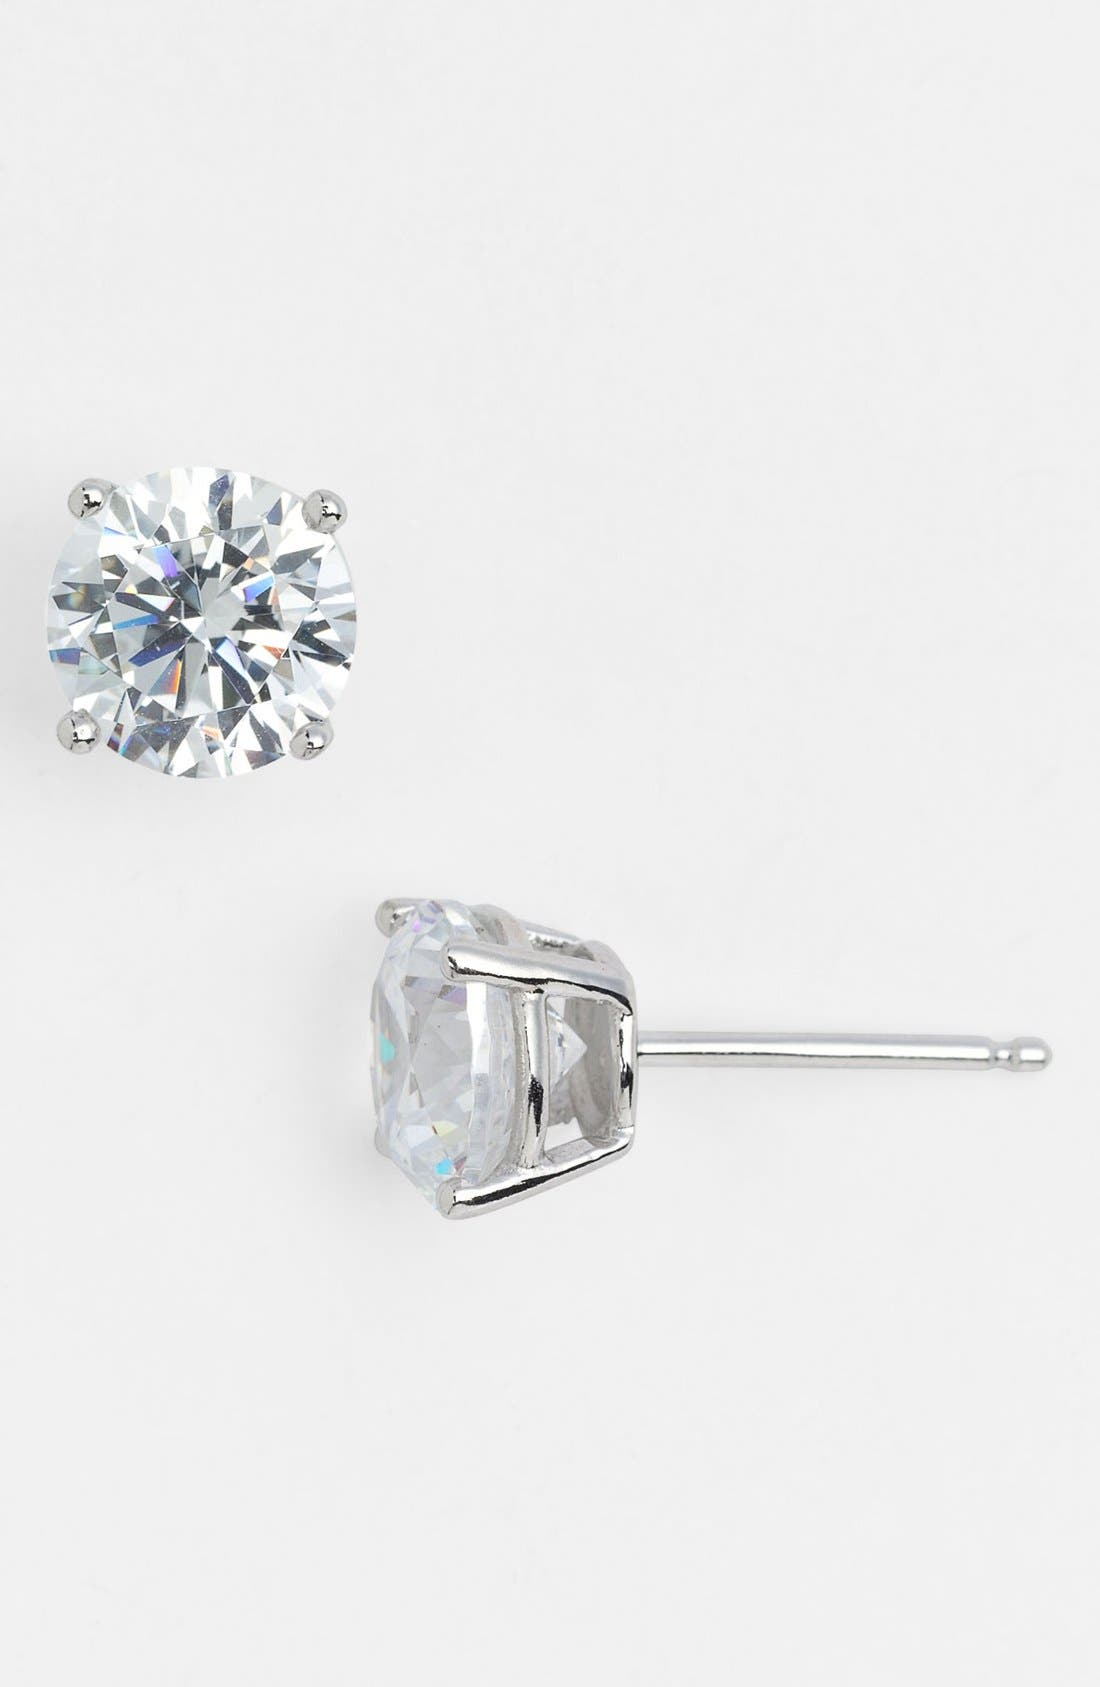 Alternate Image 1 Selected - Nordstrom 3ct tw Cubic Zirconia Stud Earrings (Special Purchase)